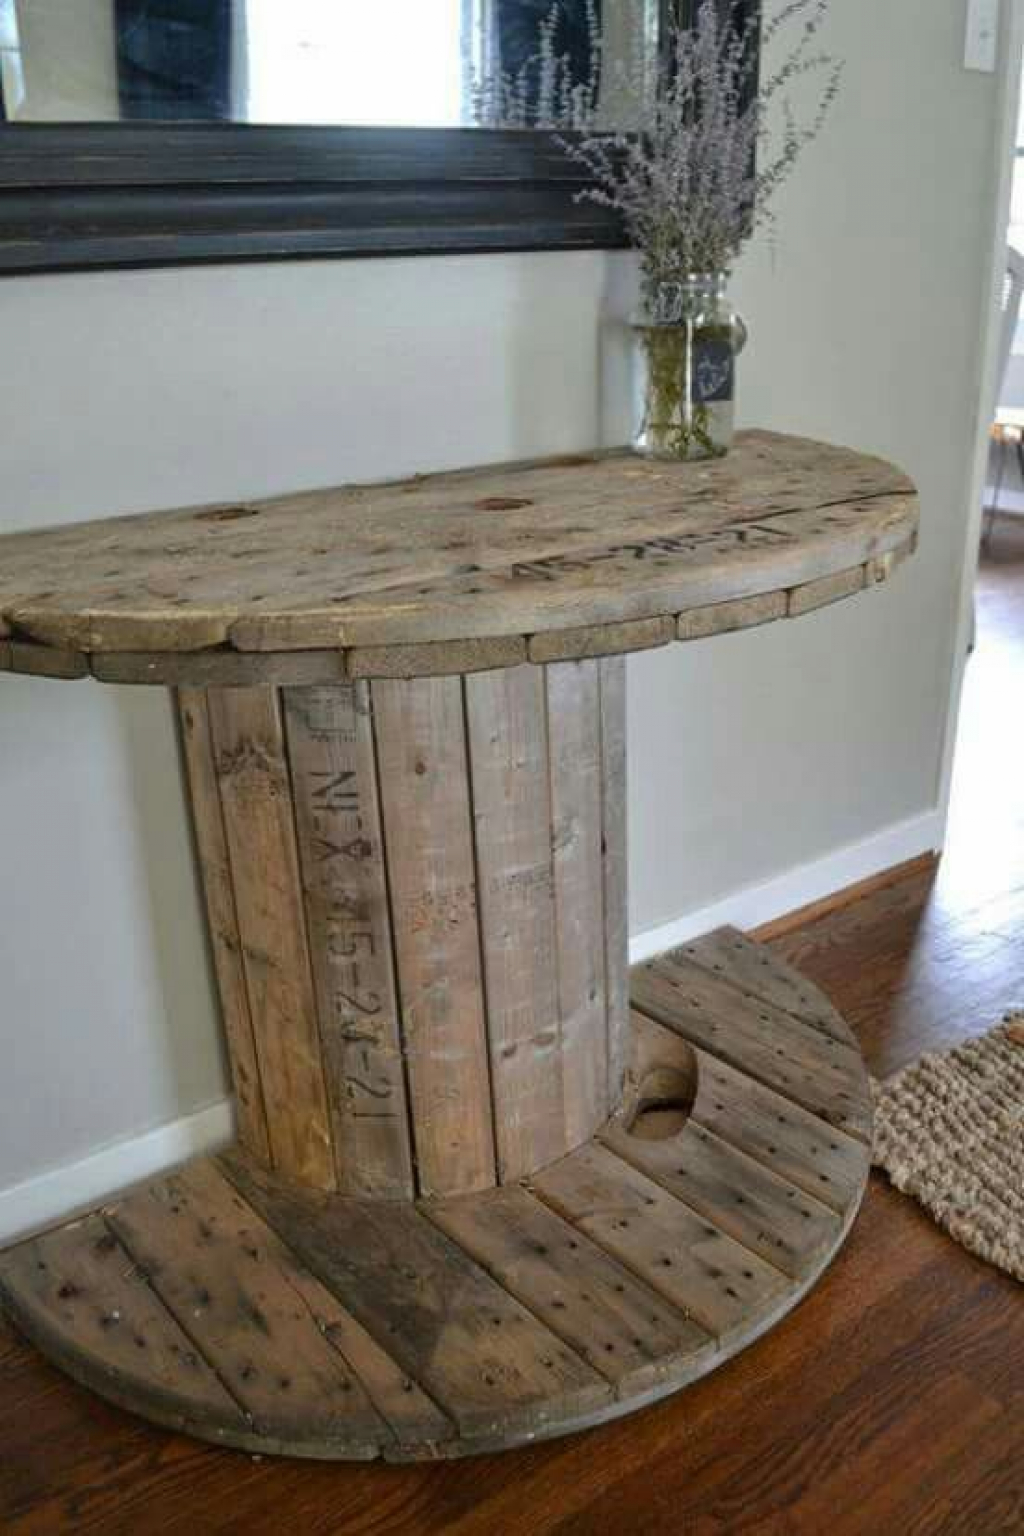 Inspirational ideas with an old electric wire spool or an wooden ...